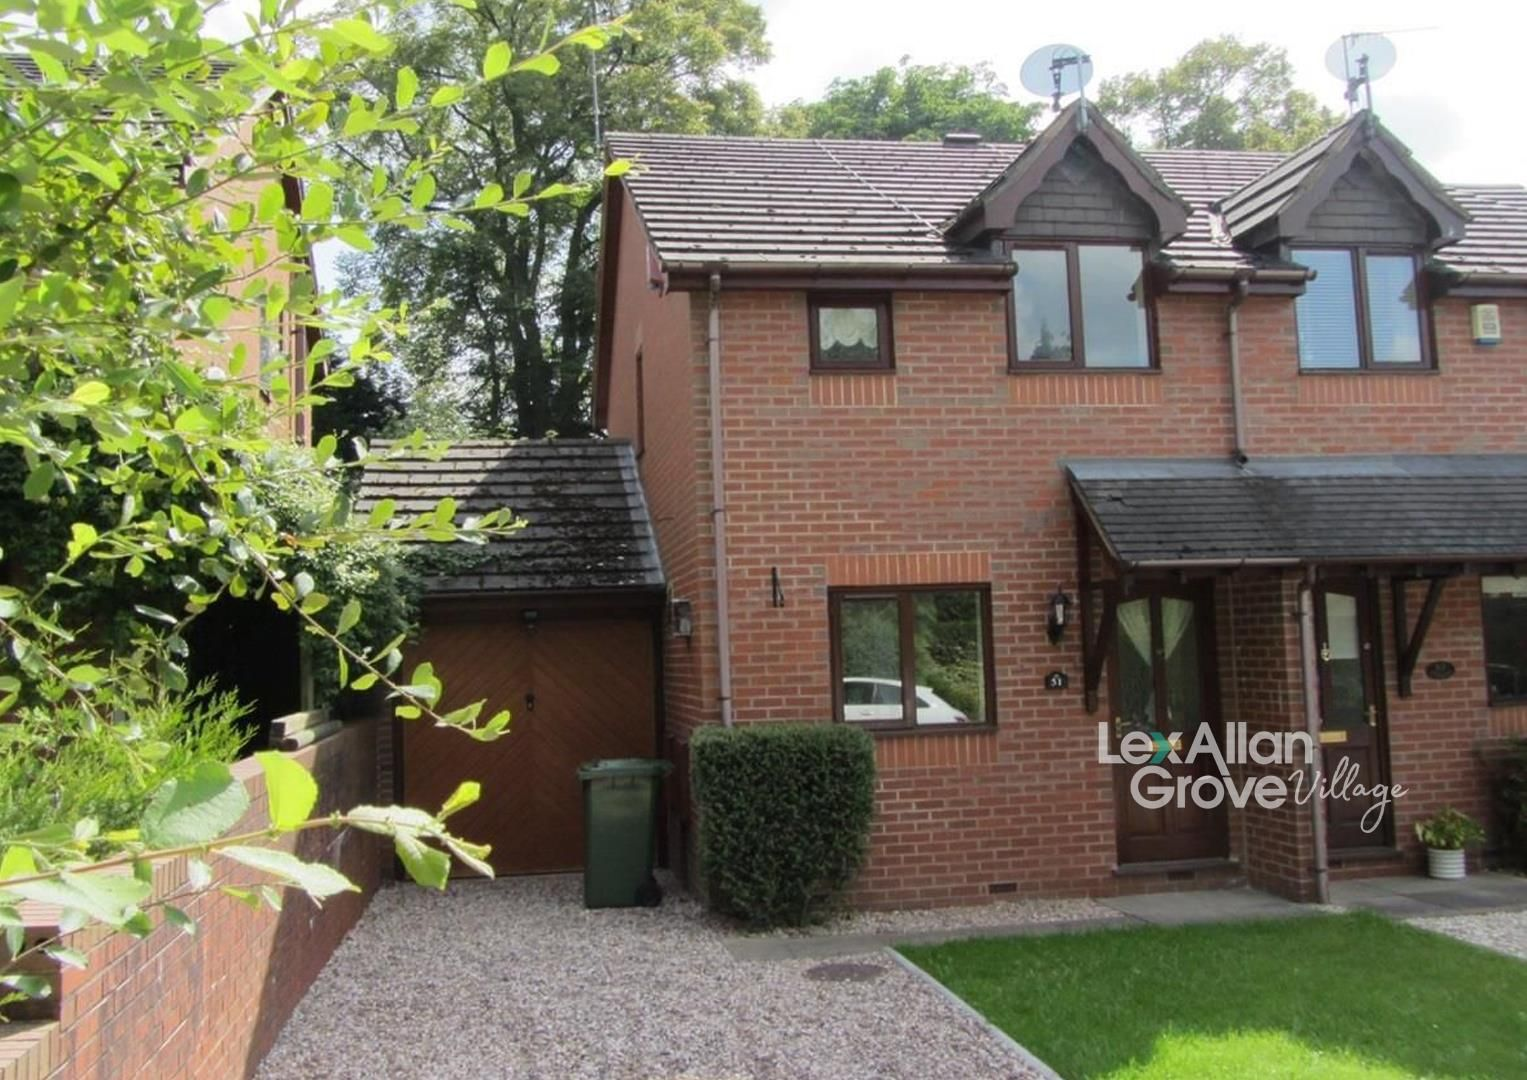 2 bed semi-detached for sale in Blakedown  - Property Image 1